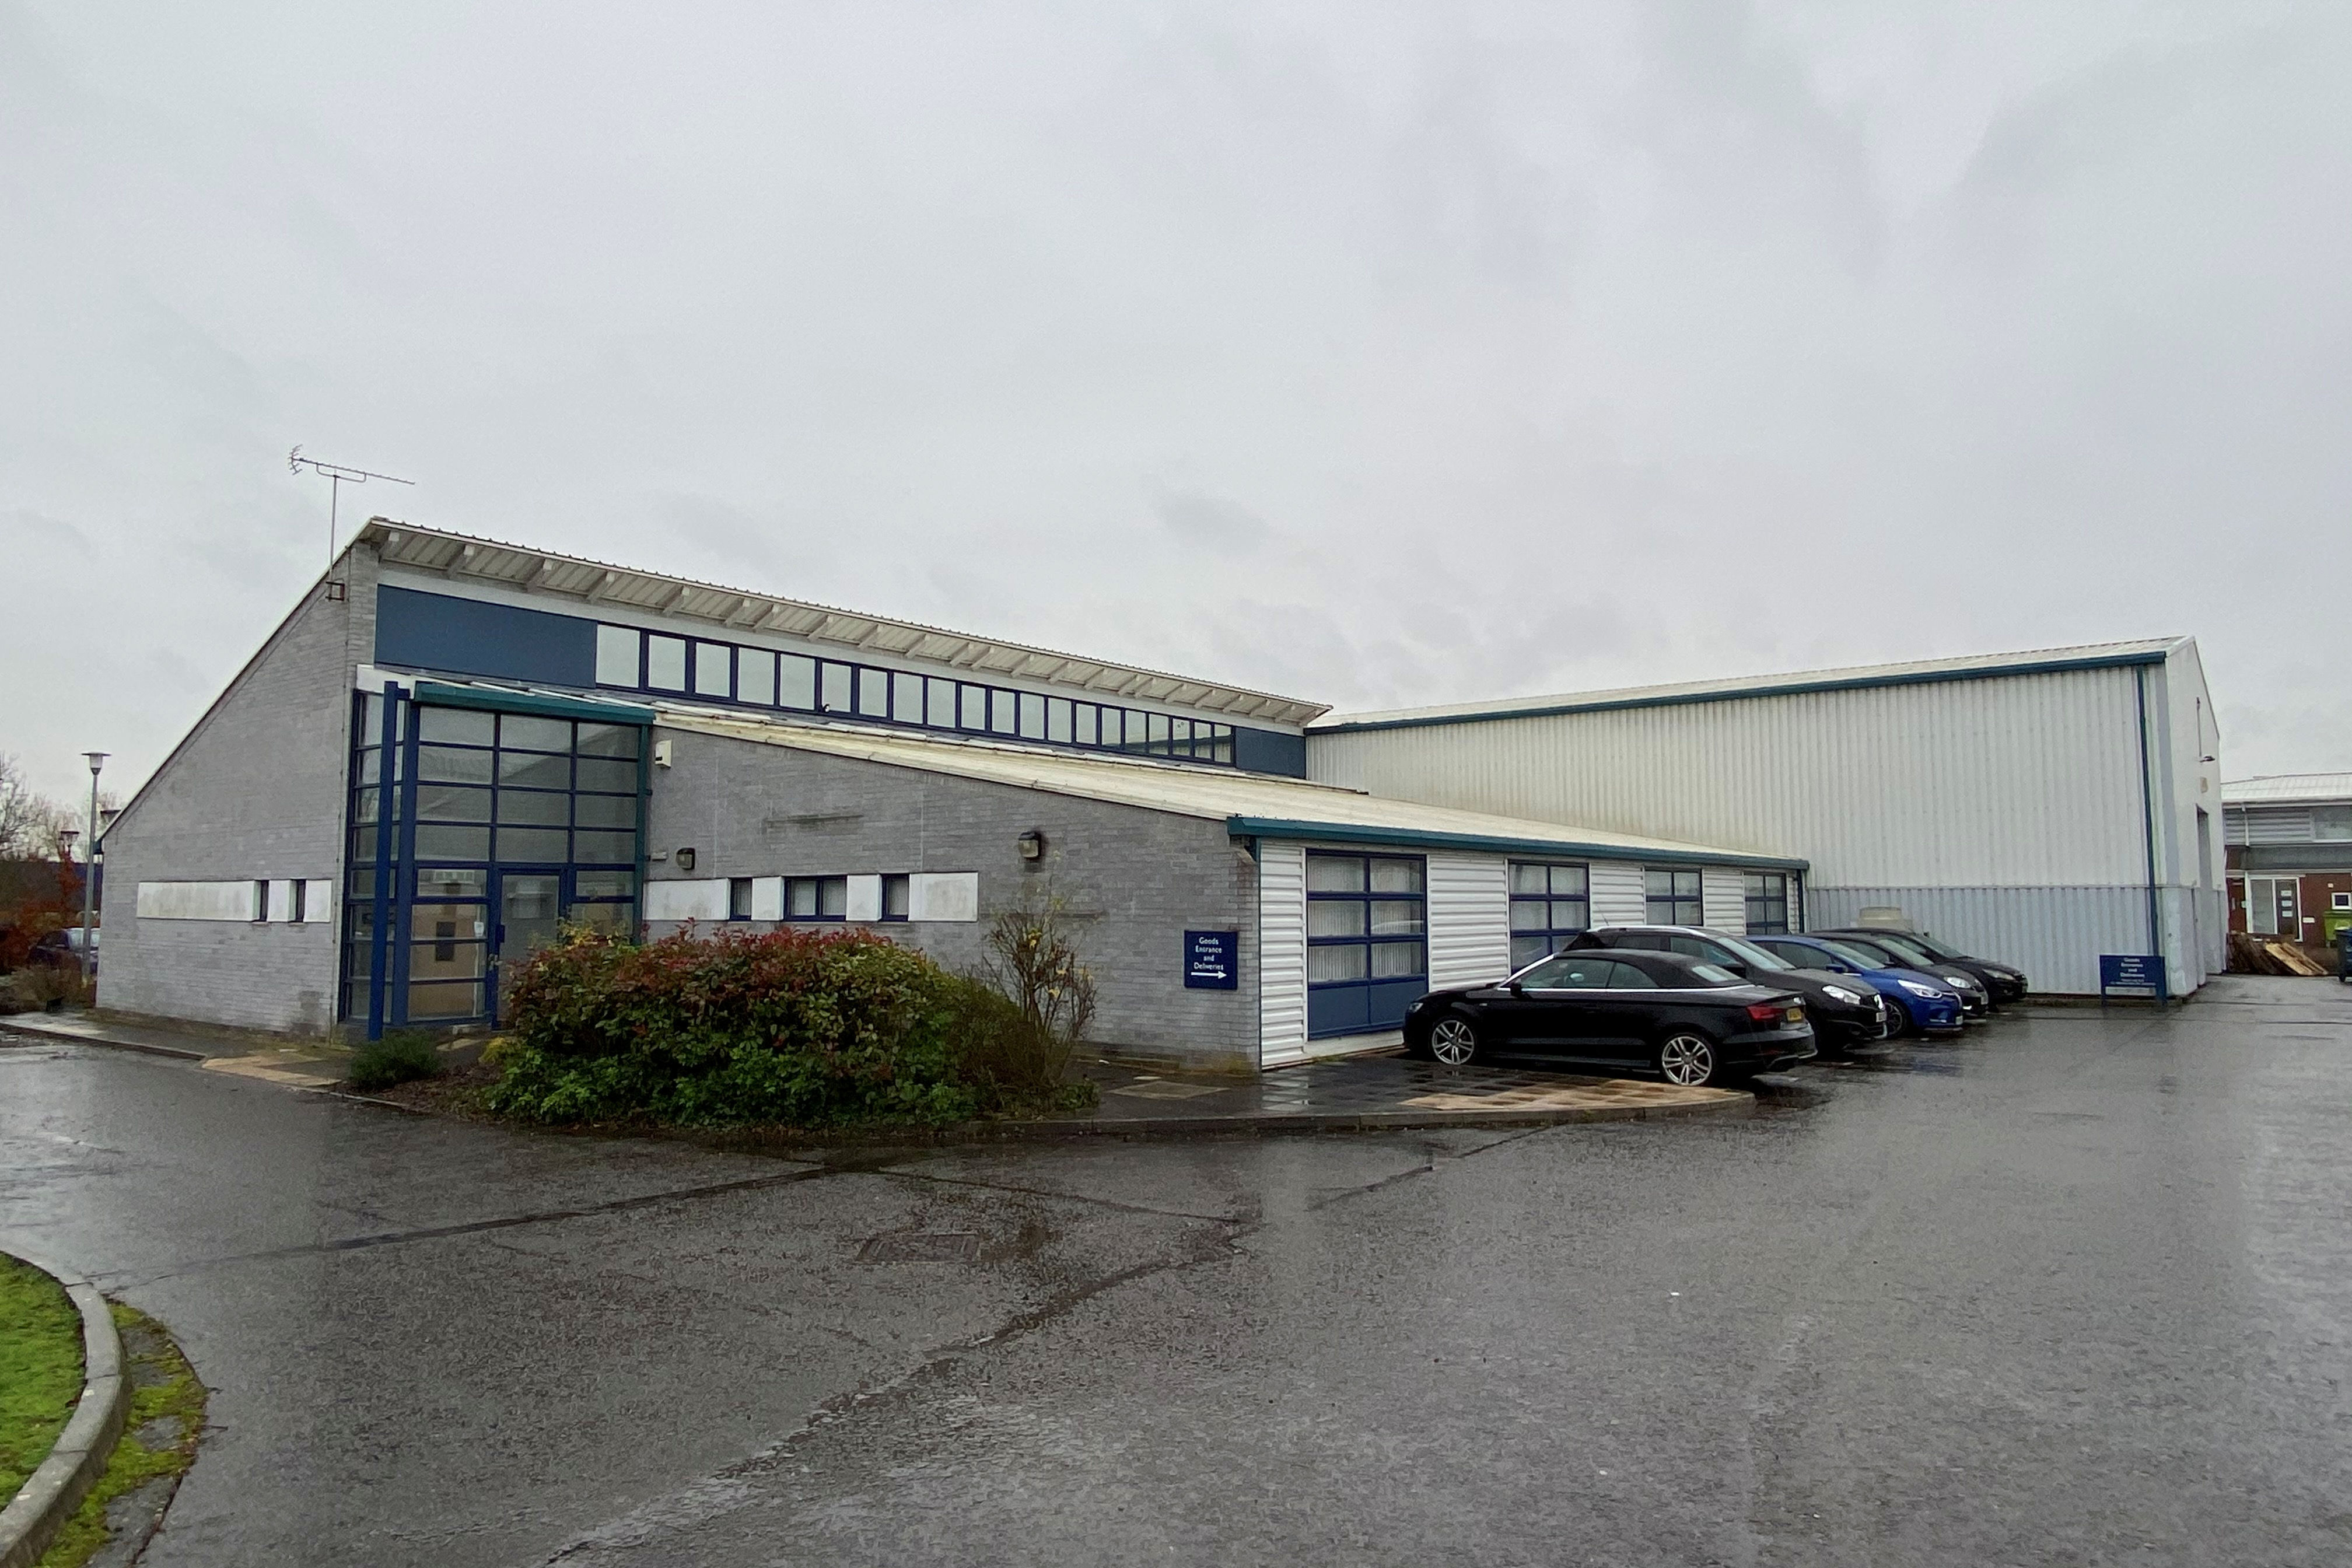 MAJOR ELY OFFICE AND WAREHOUSE COMPLEX SOLD FOR £1.1 MILLION